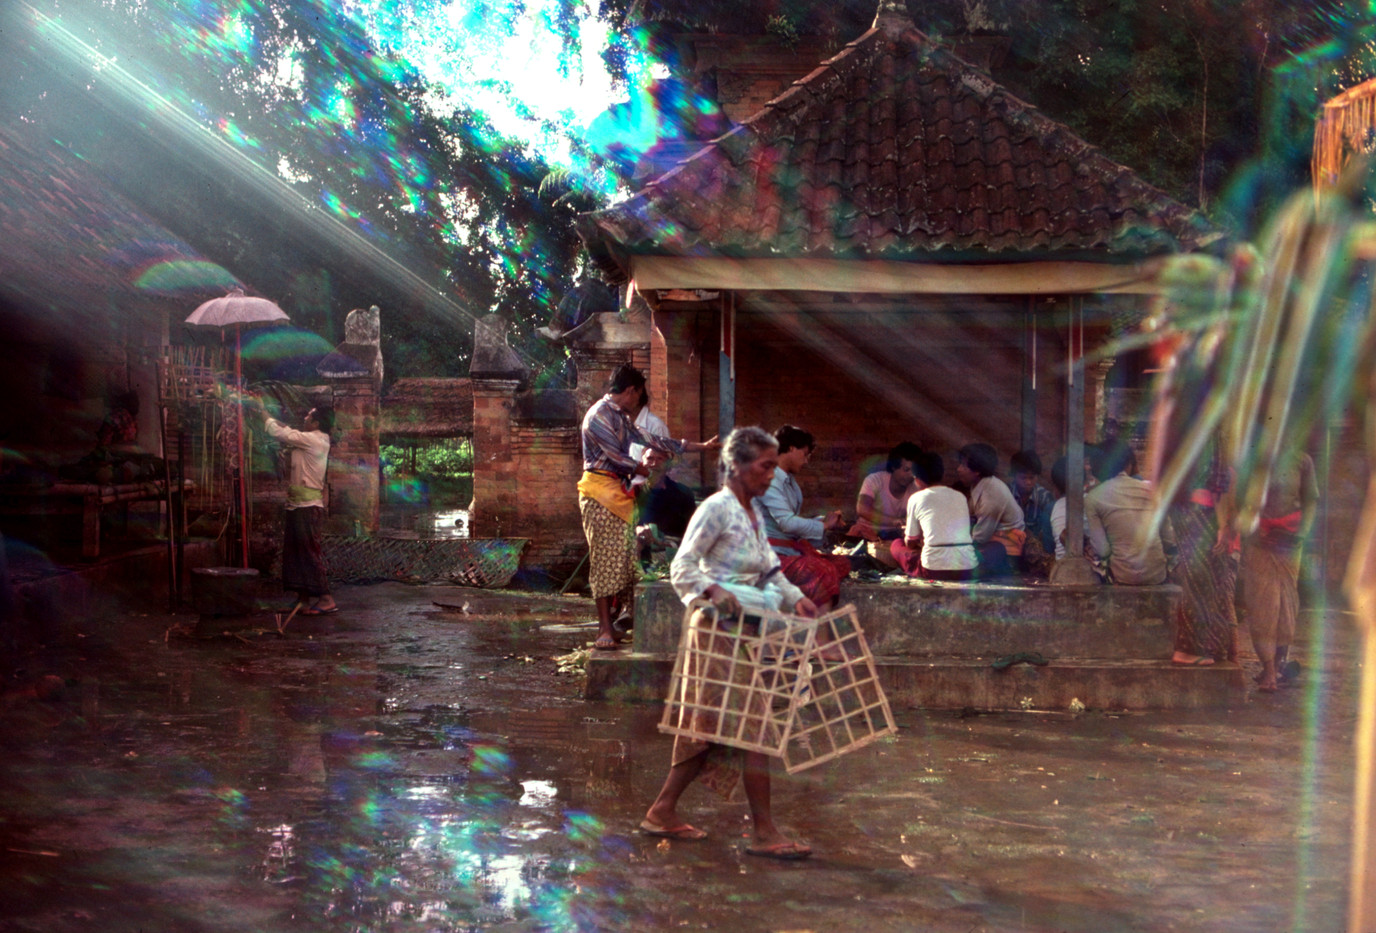 Temple ceremony after rain shower